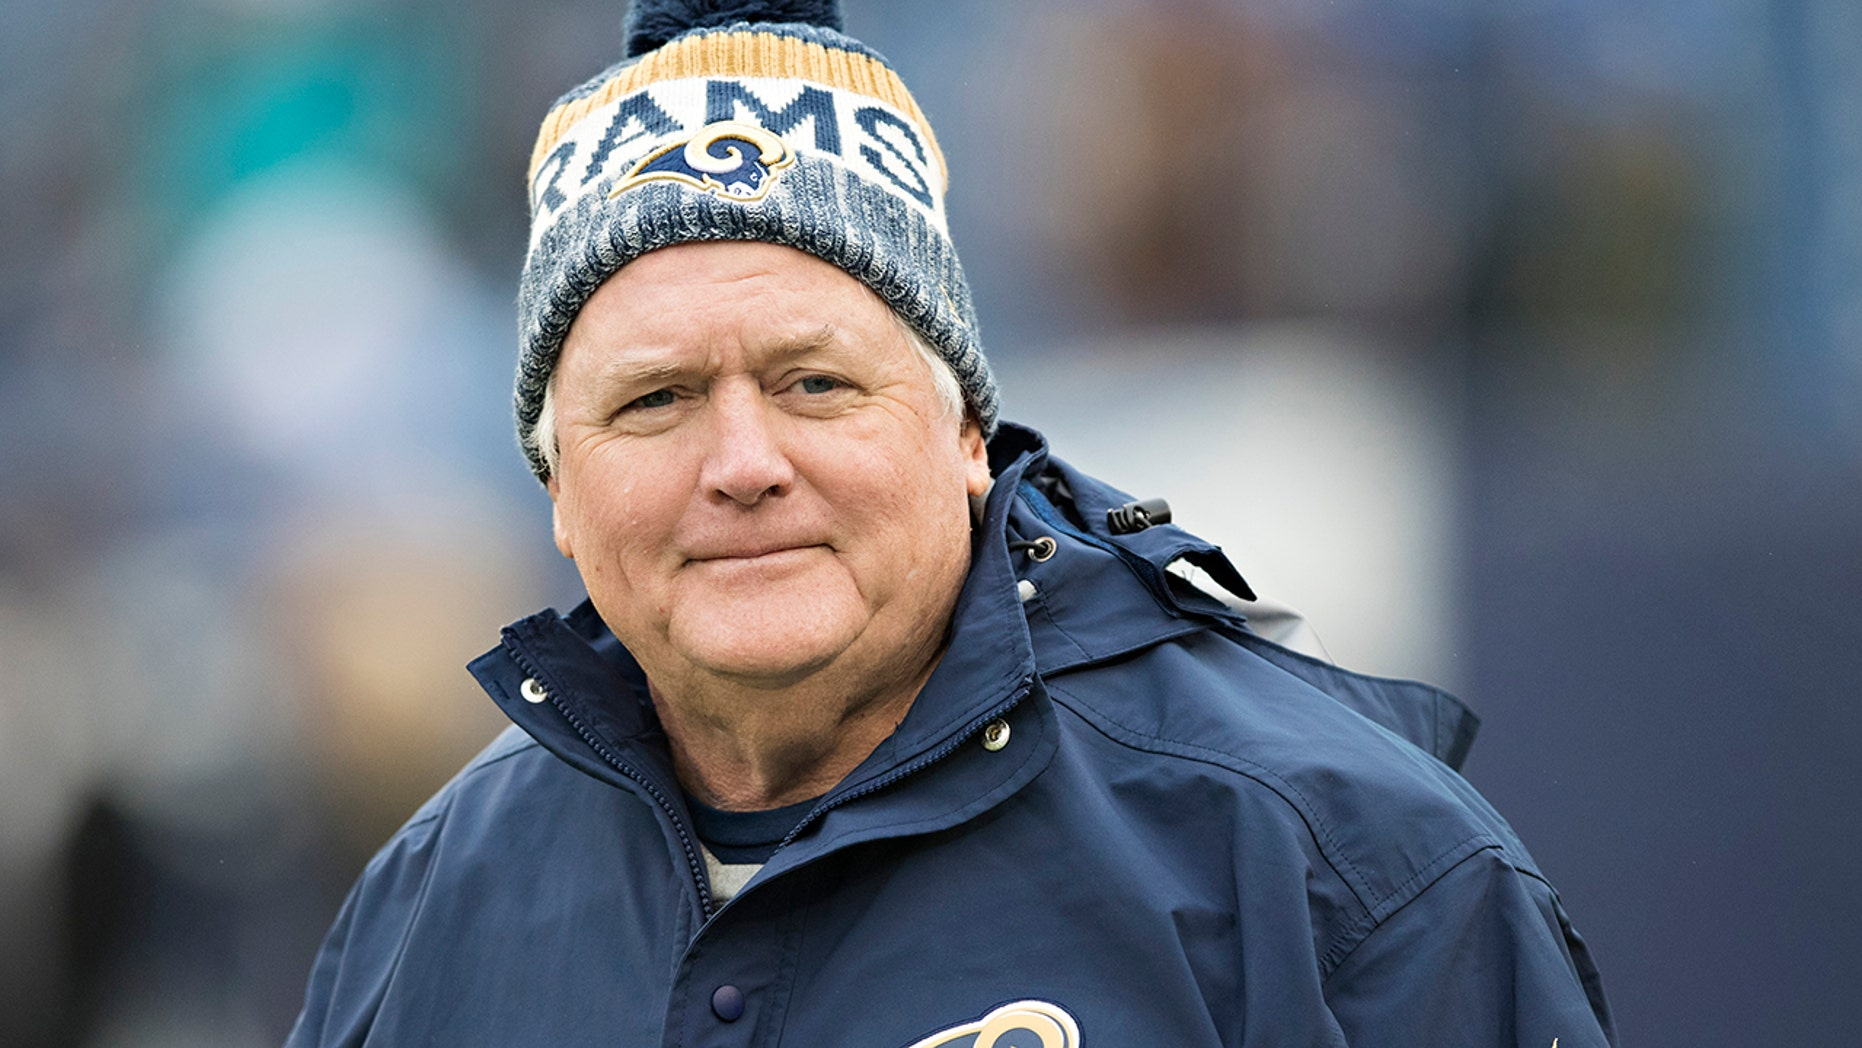 Defensive coordinator Wade Phillips of the Los Angeles Rams walks onto the field before a game against the Tennessee Titans at Nissan Stadium on Dec. 24, 2017 in Nashville, Tennessee. The Rams defeated the Titans 27-23.